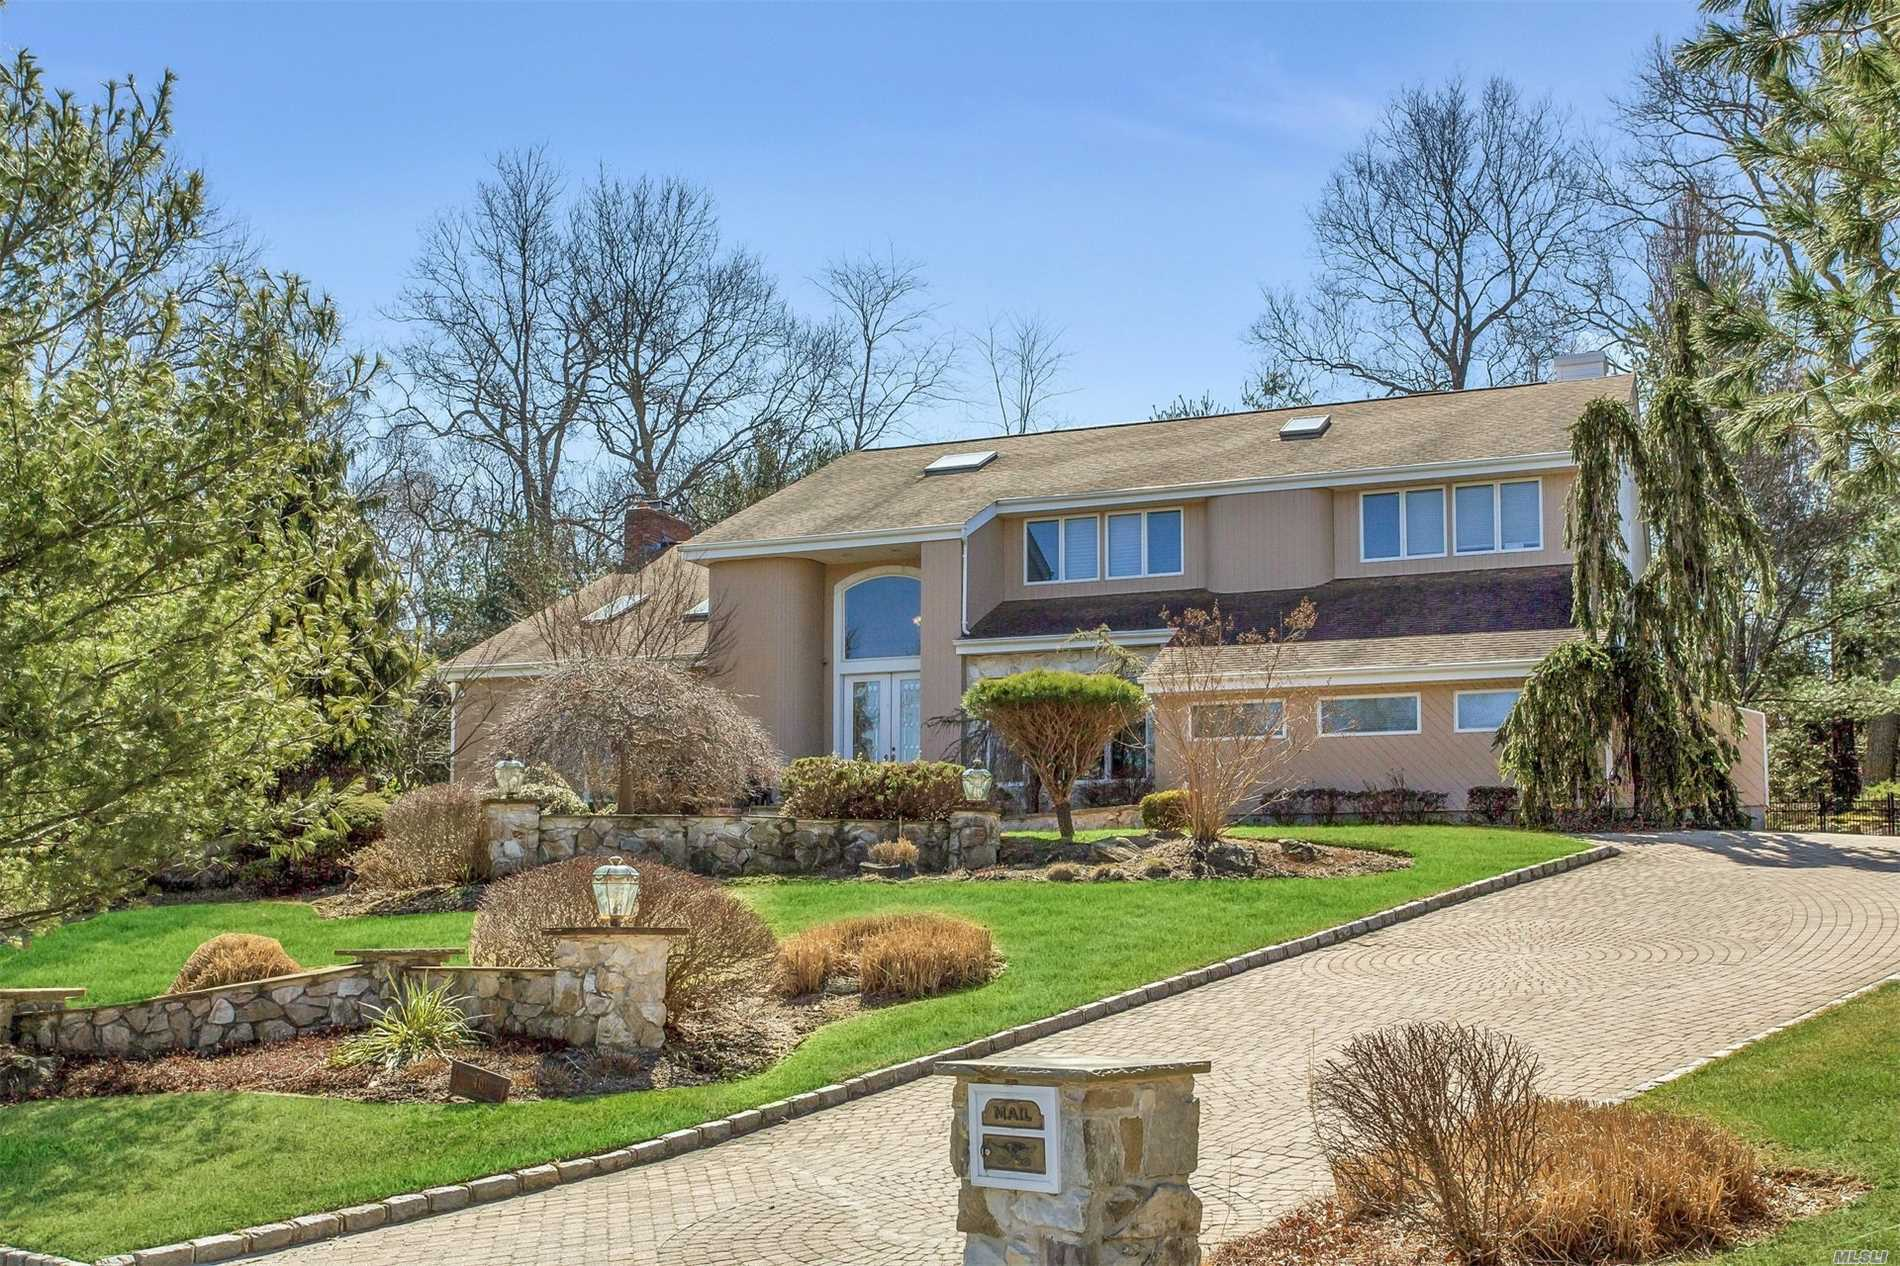 40 Hunting Hollow Ct - Dix Hills, New York